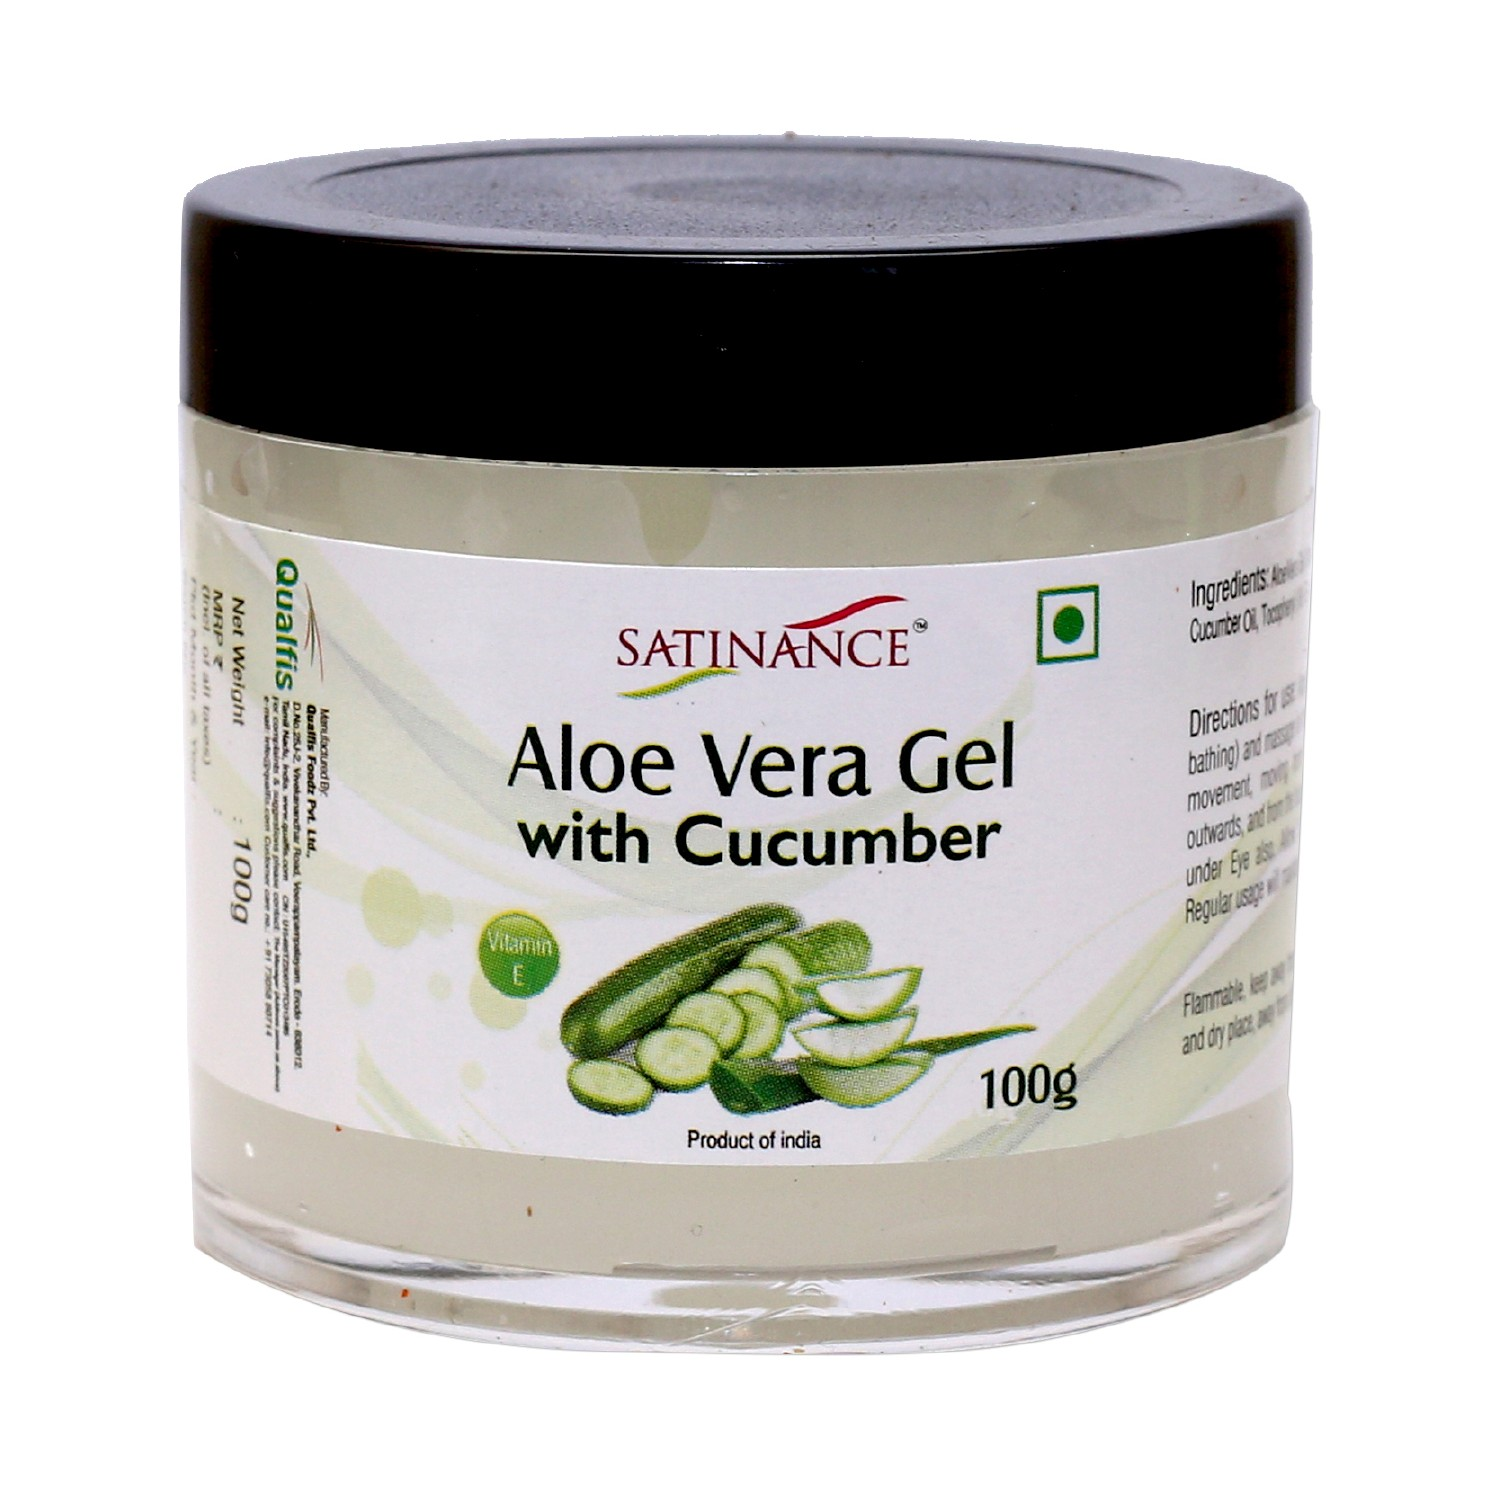 Aloe Vera Gel With Cucumber for Face - 100g ( With Vitamin E)